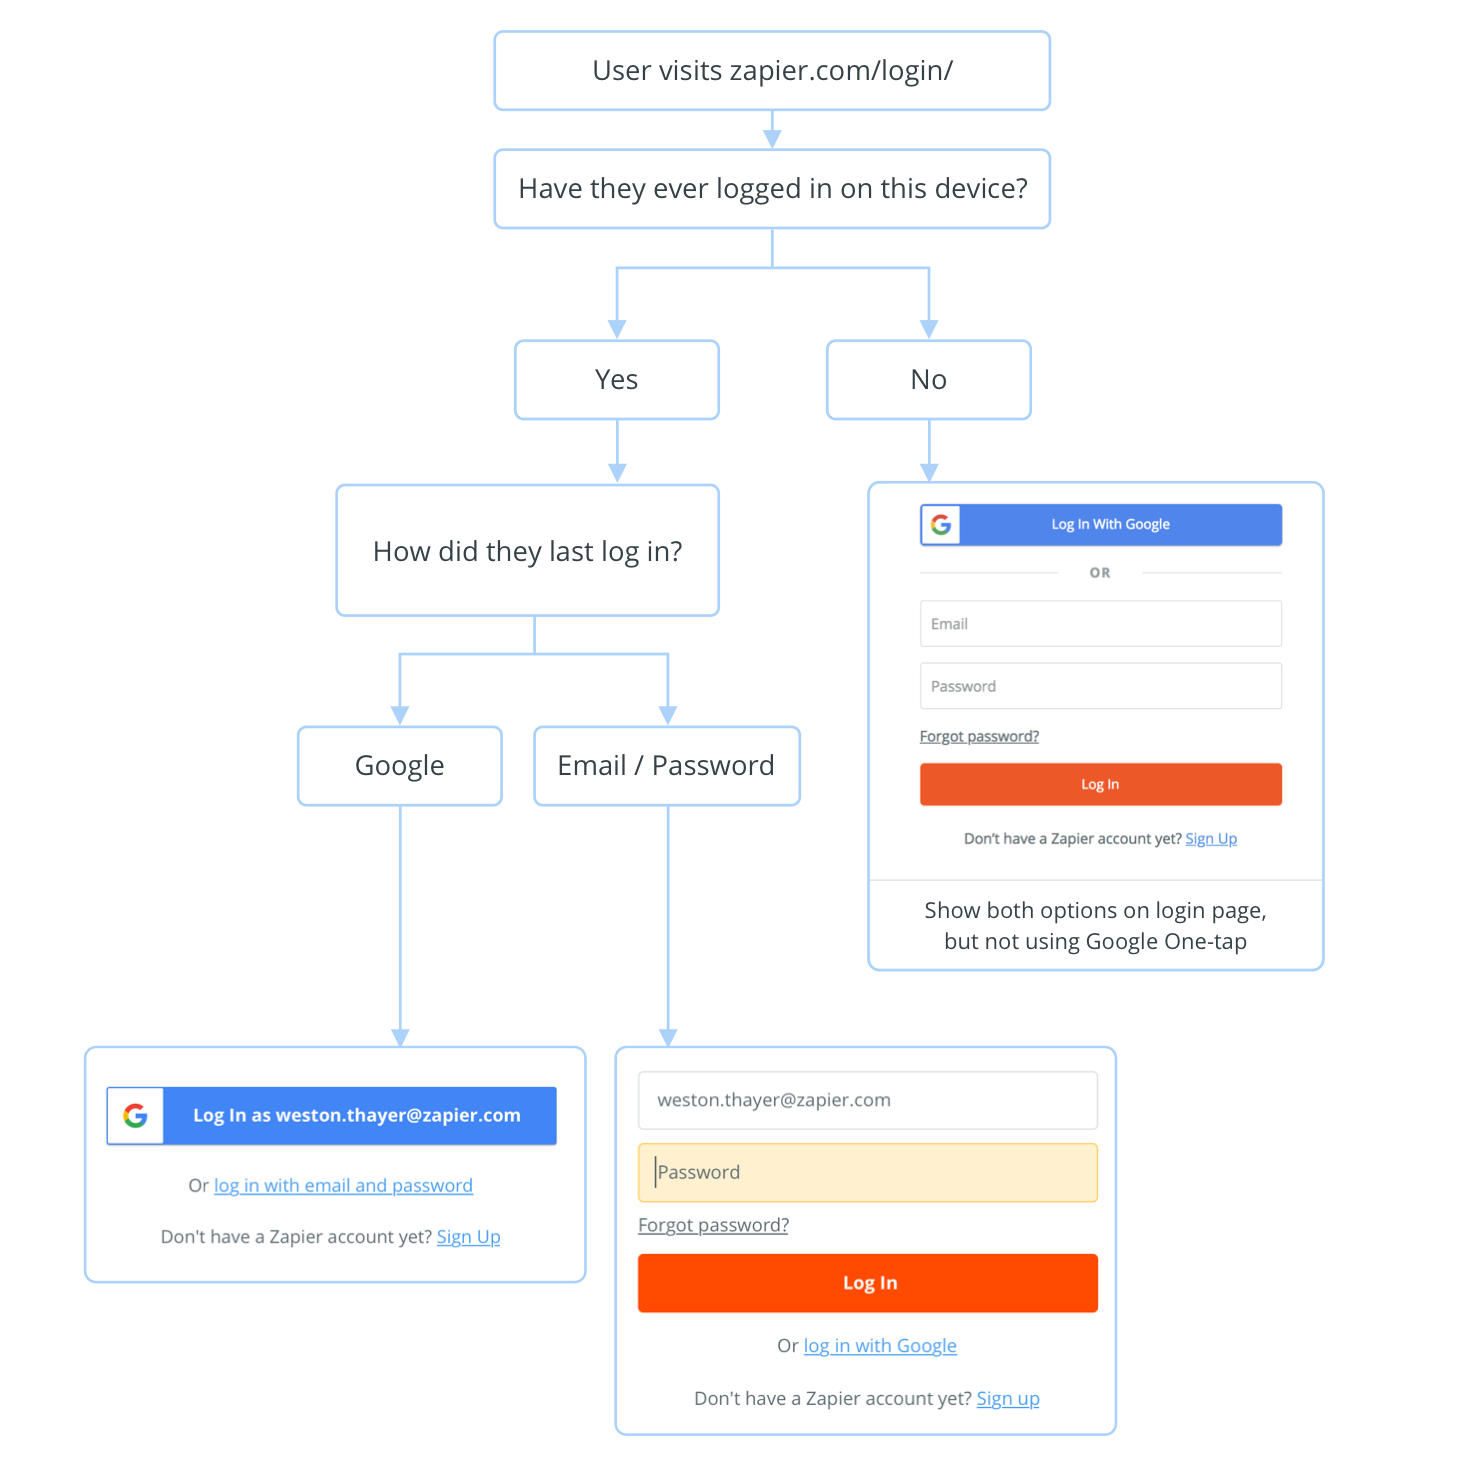 Google One-tap Experiments: An Improved UX with IFrames and Cookies